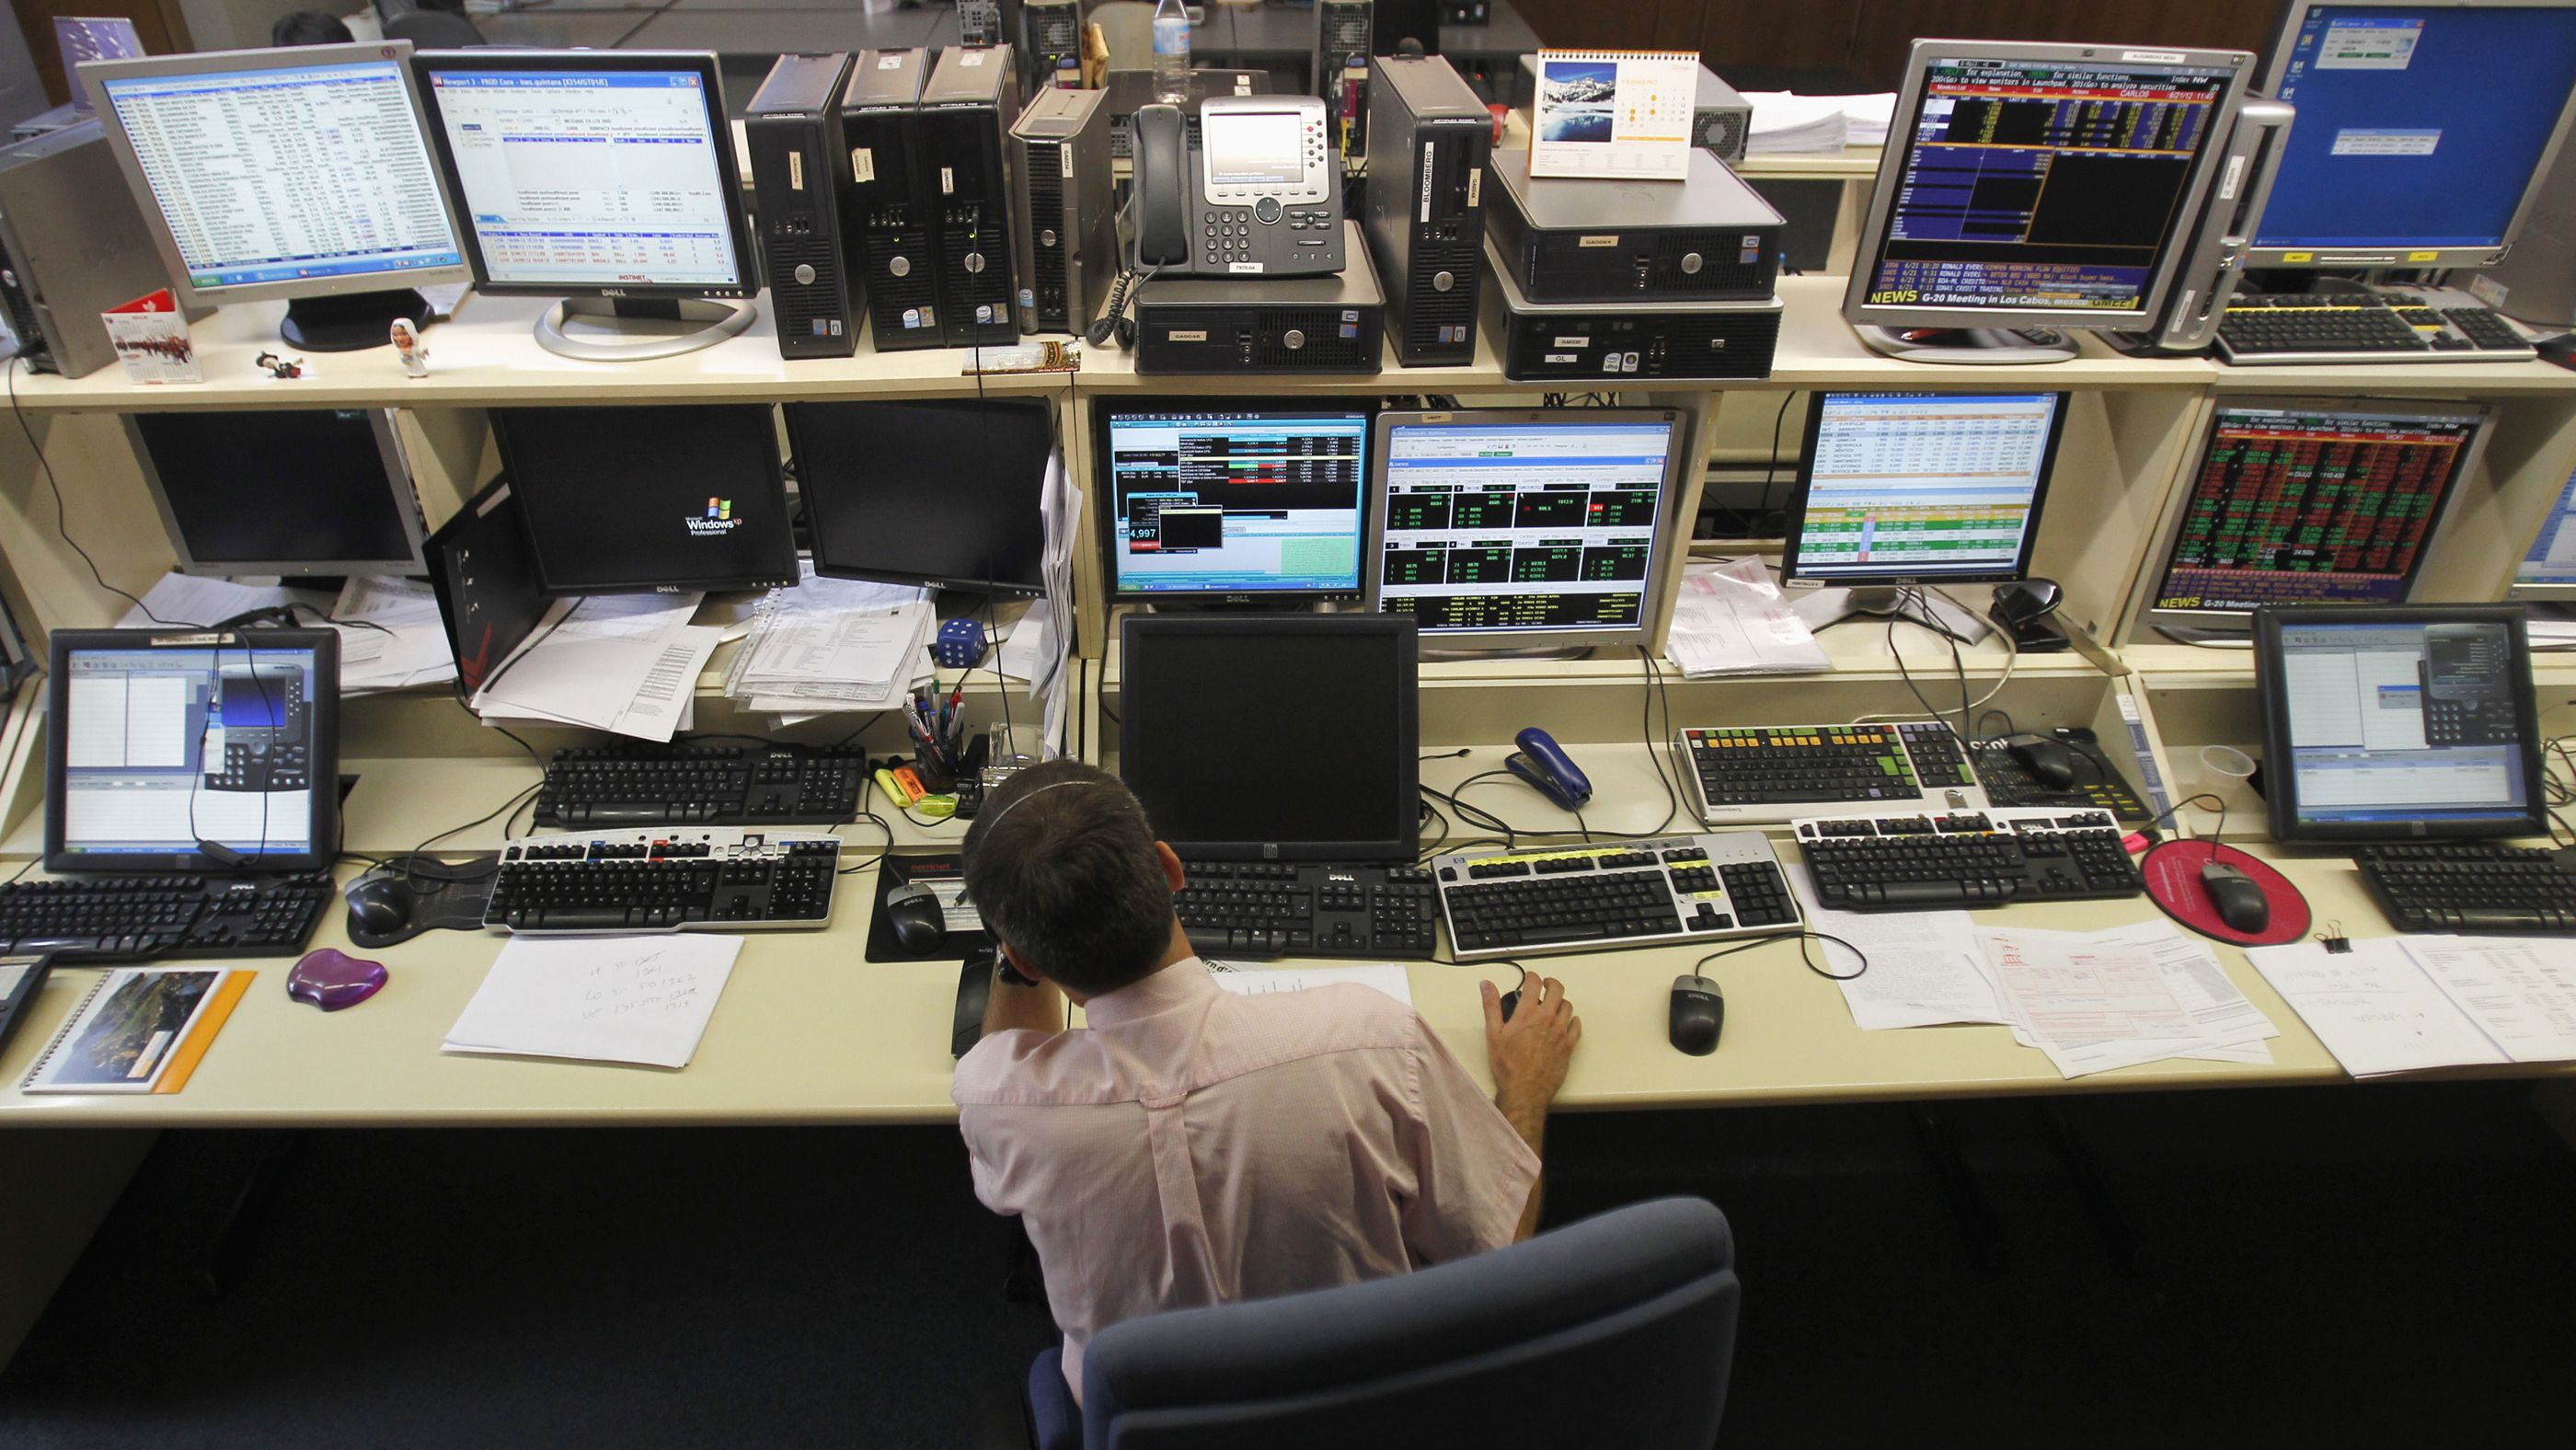 A trader looks at computer screens during Spain's bonds auction in a broker's office in Barcelona June 21, 2012.